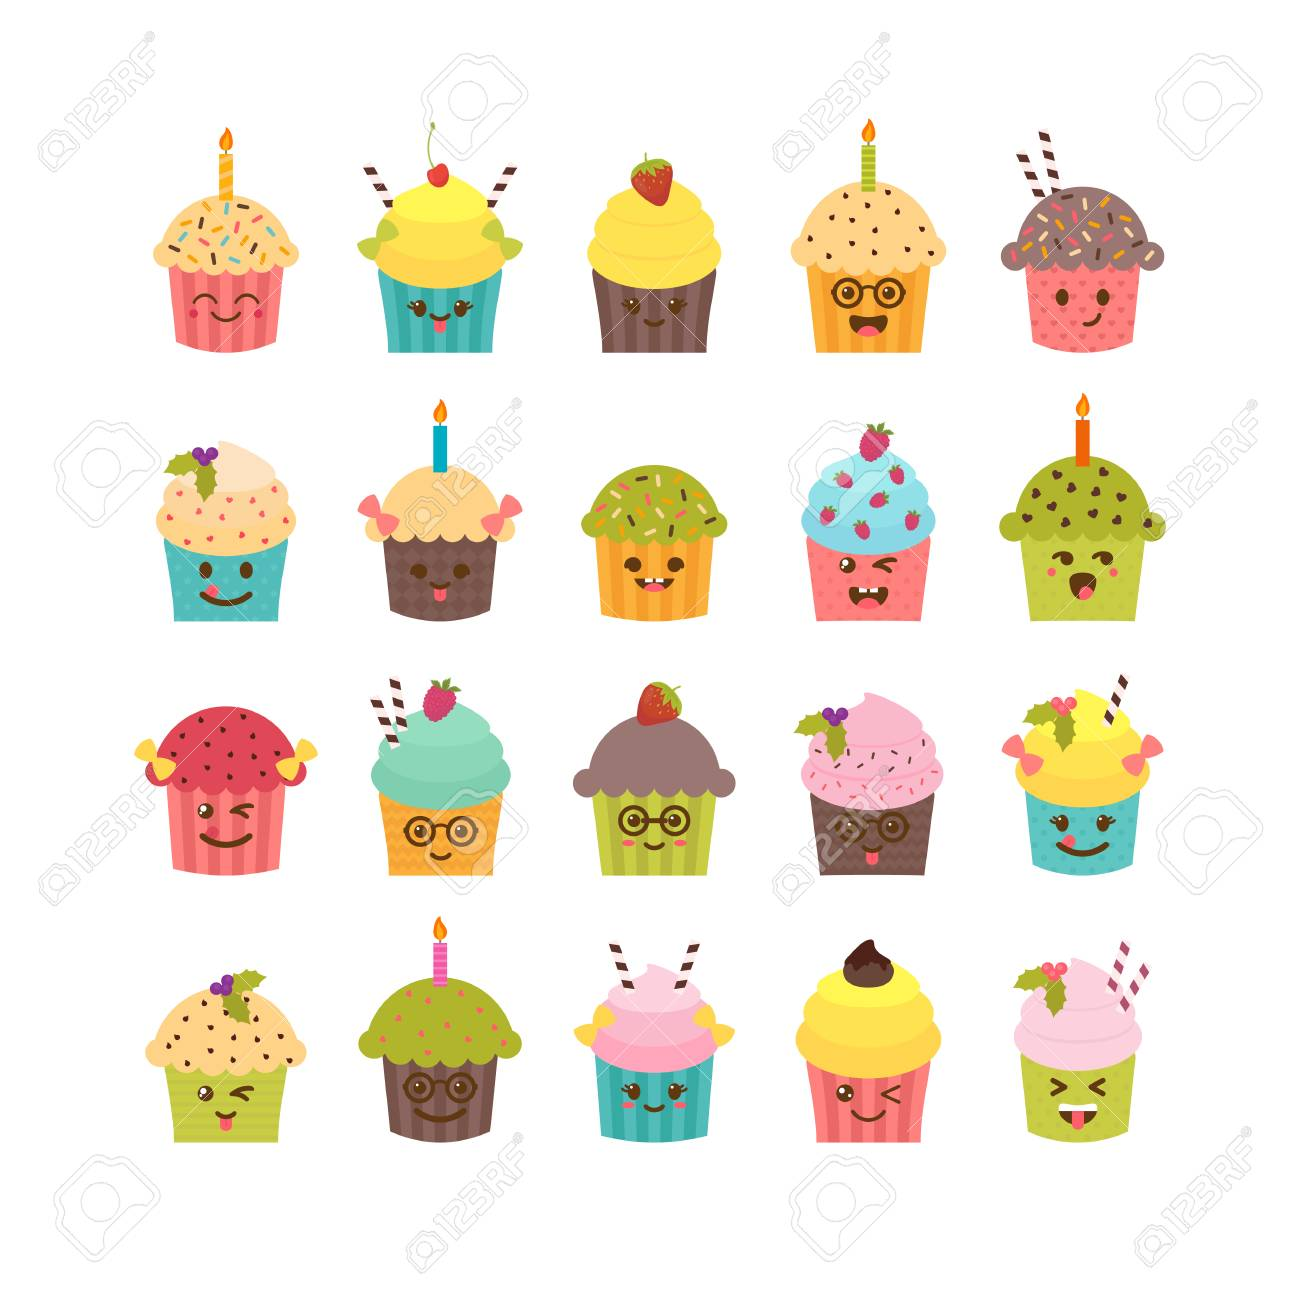 Set Of Cupcakes And Muffins Kawaii Cute Cartoon Characters Emoji